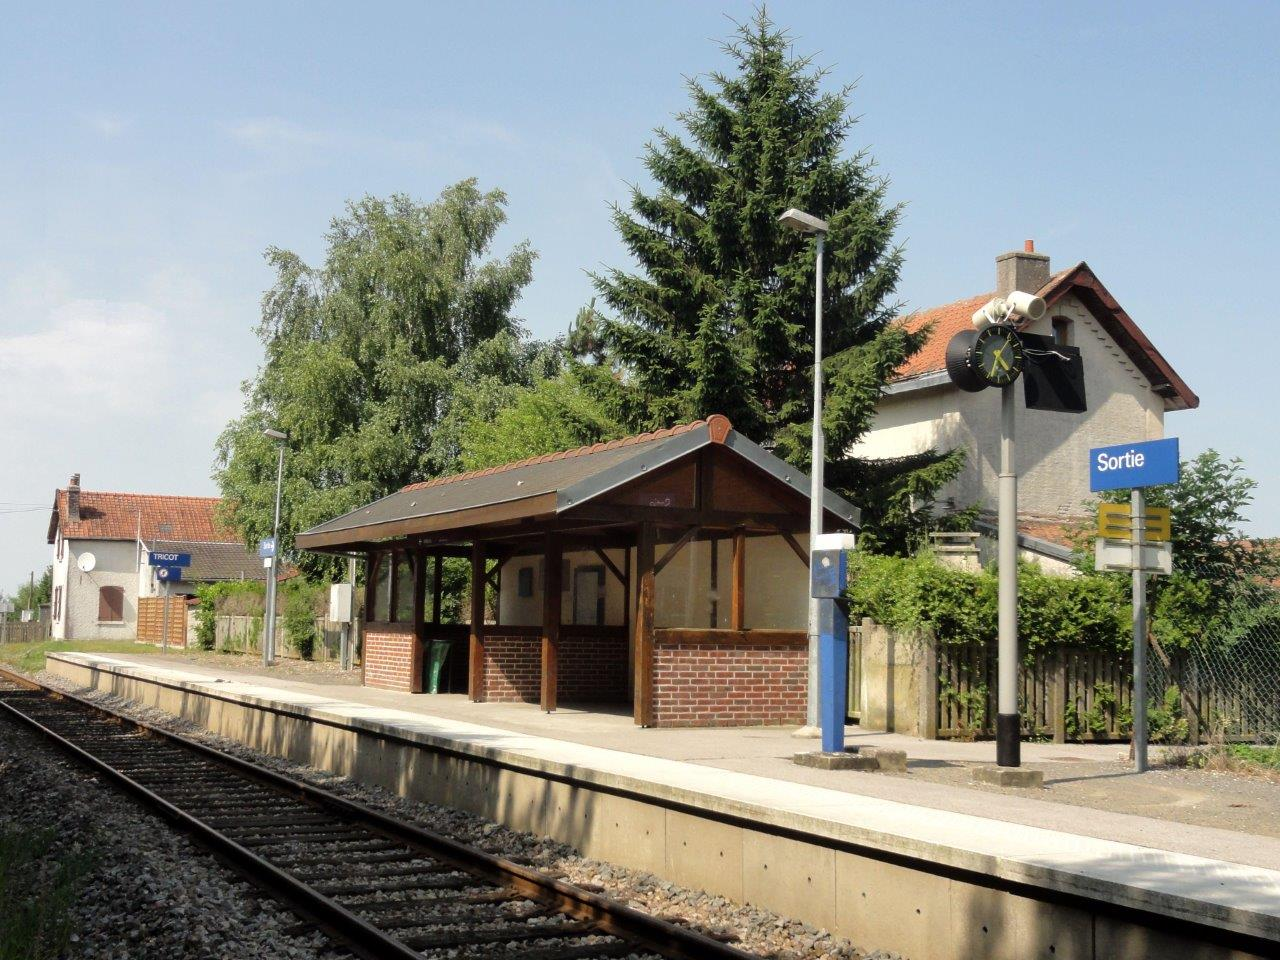 gare-de-tricot-train-station